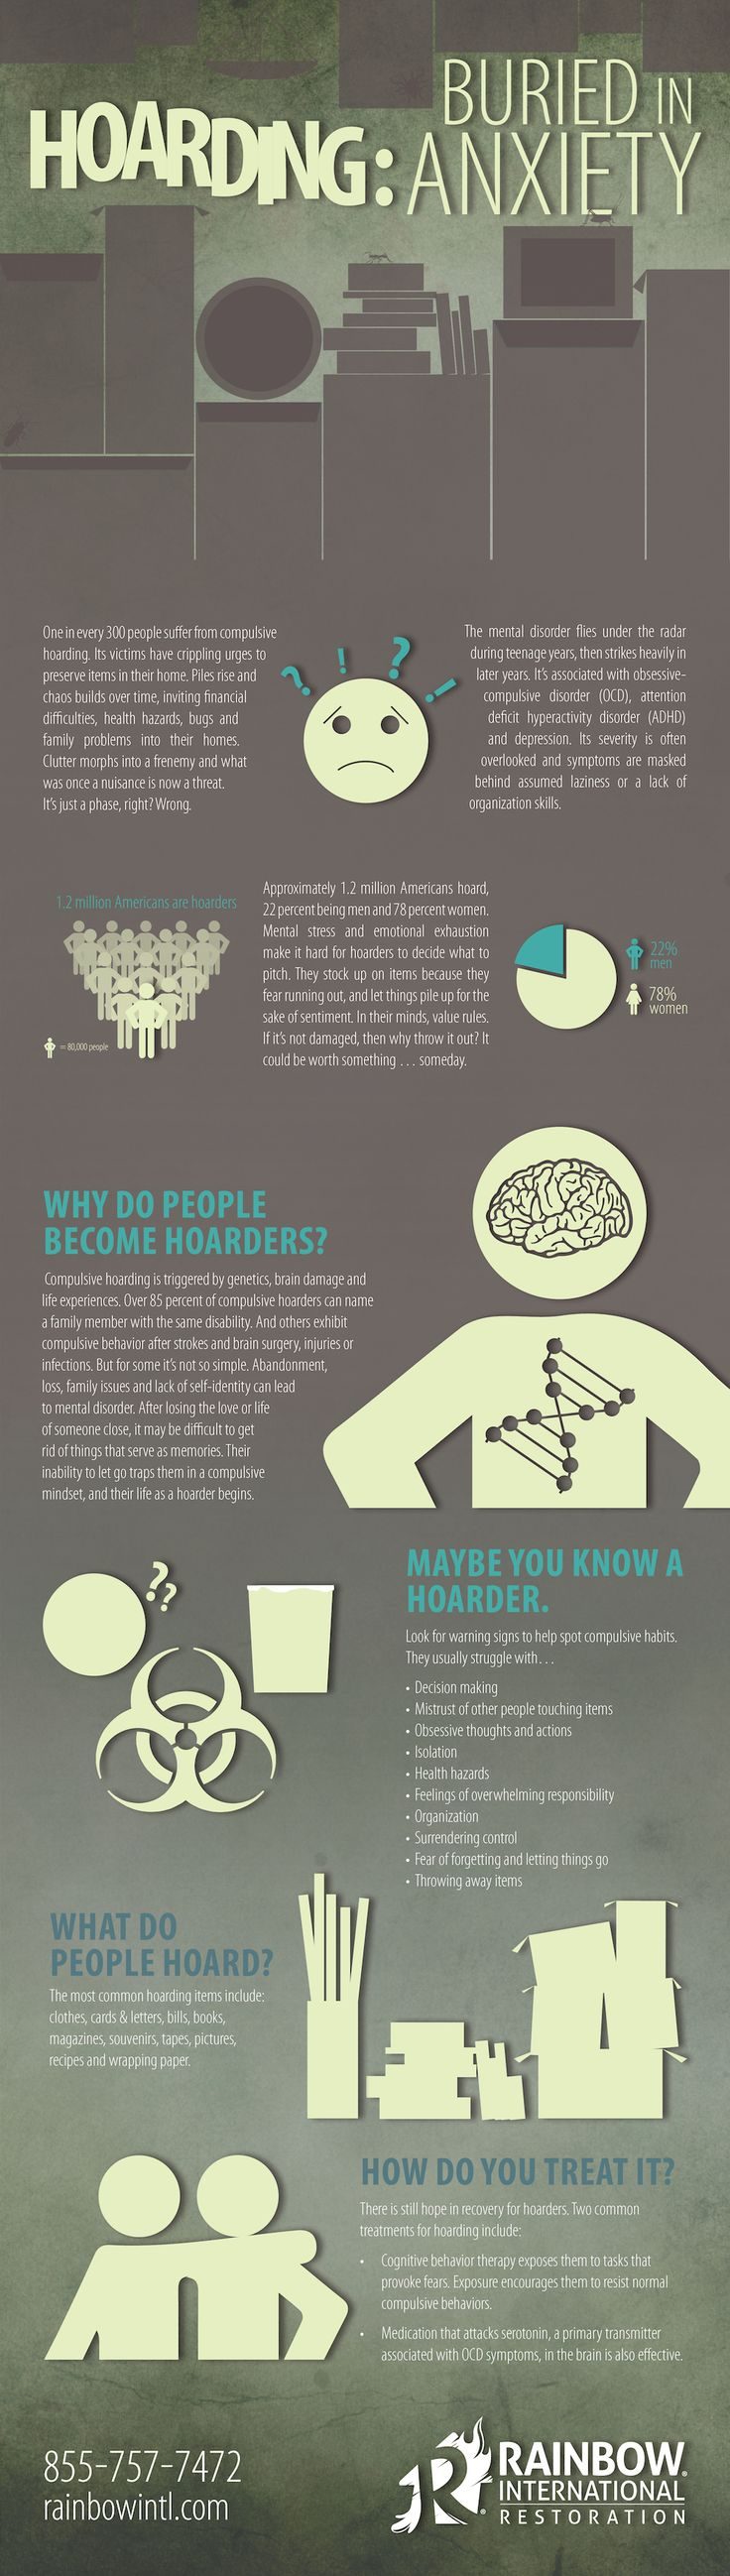 Hoarding: Buried in Anxiety Compulsive hoarding affects one in every 300 people in the United States. Recognizing the seriousness of this issue and offering assistance and safety tips to hoarders as they fight with the physical and mental needs of cleanup is important to Rainbow International®.